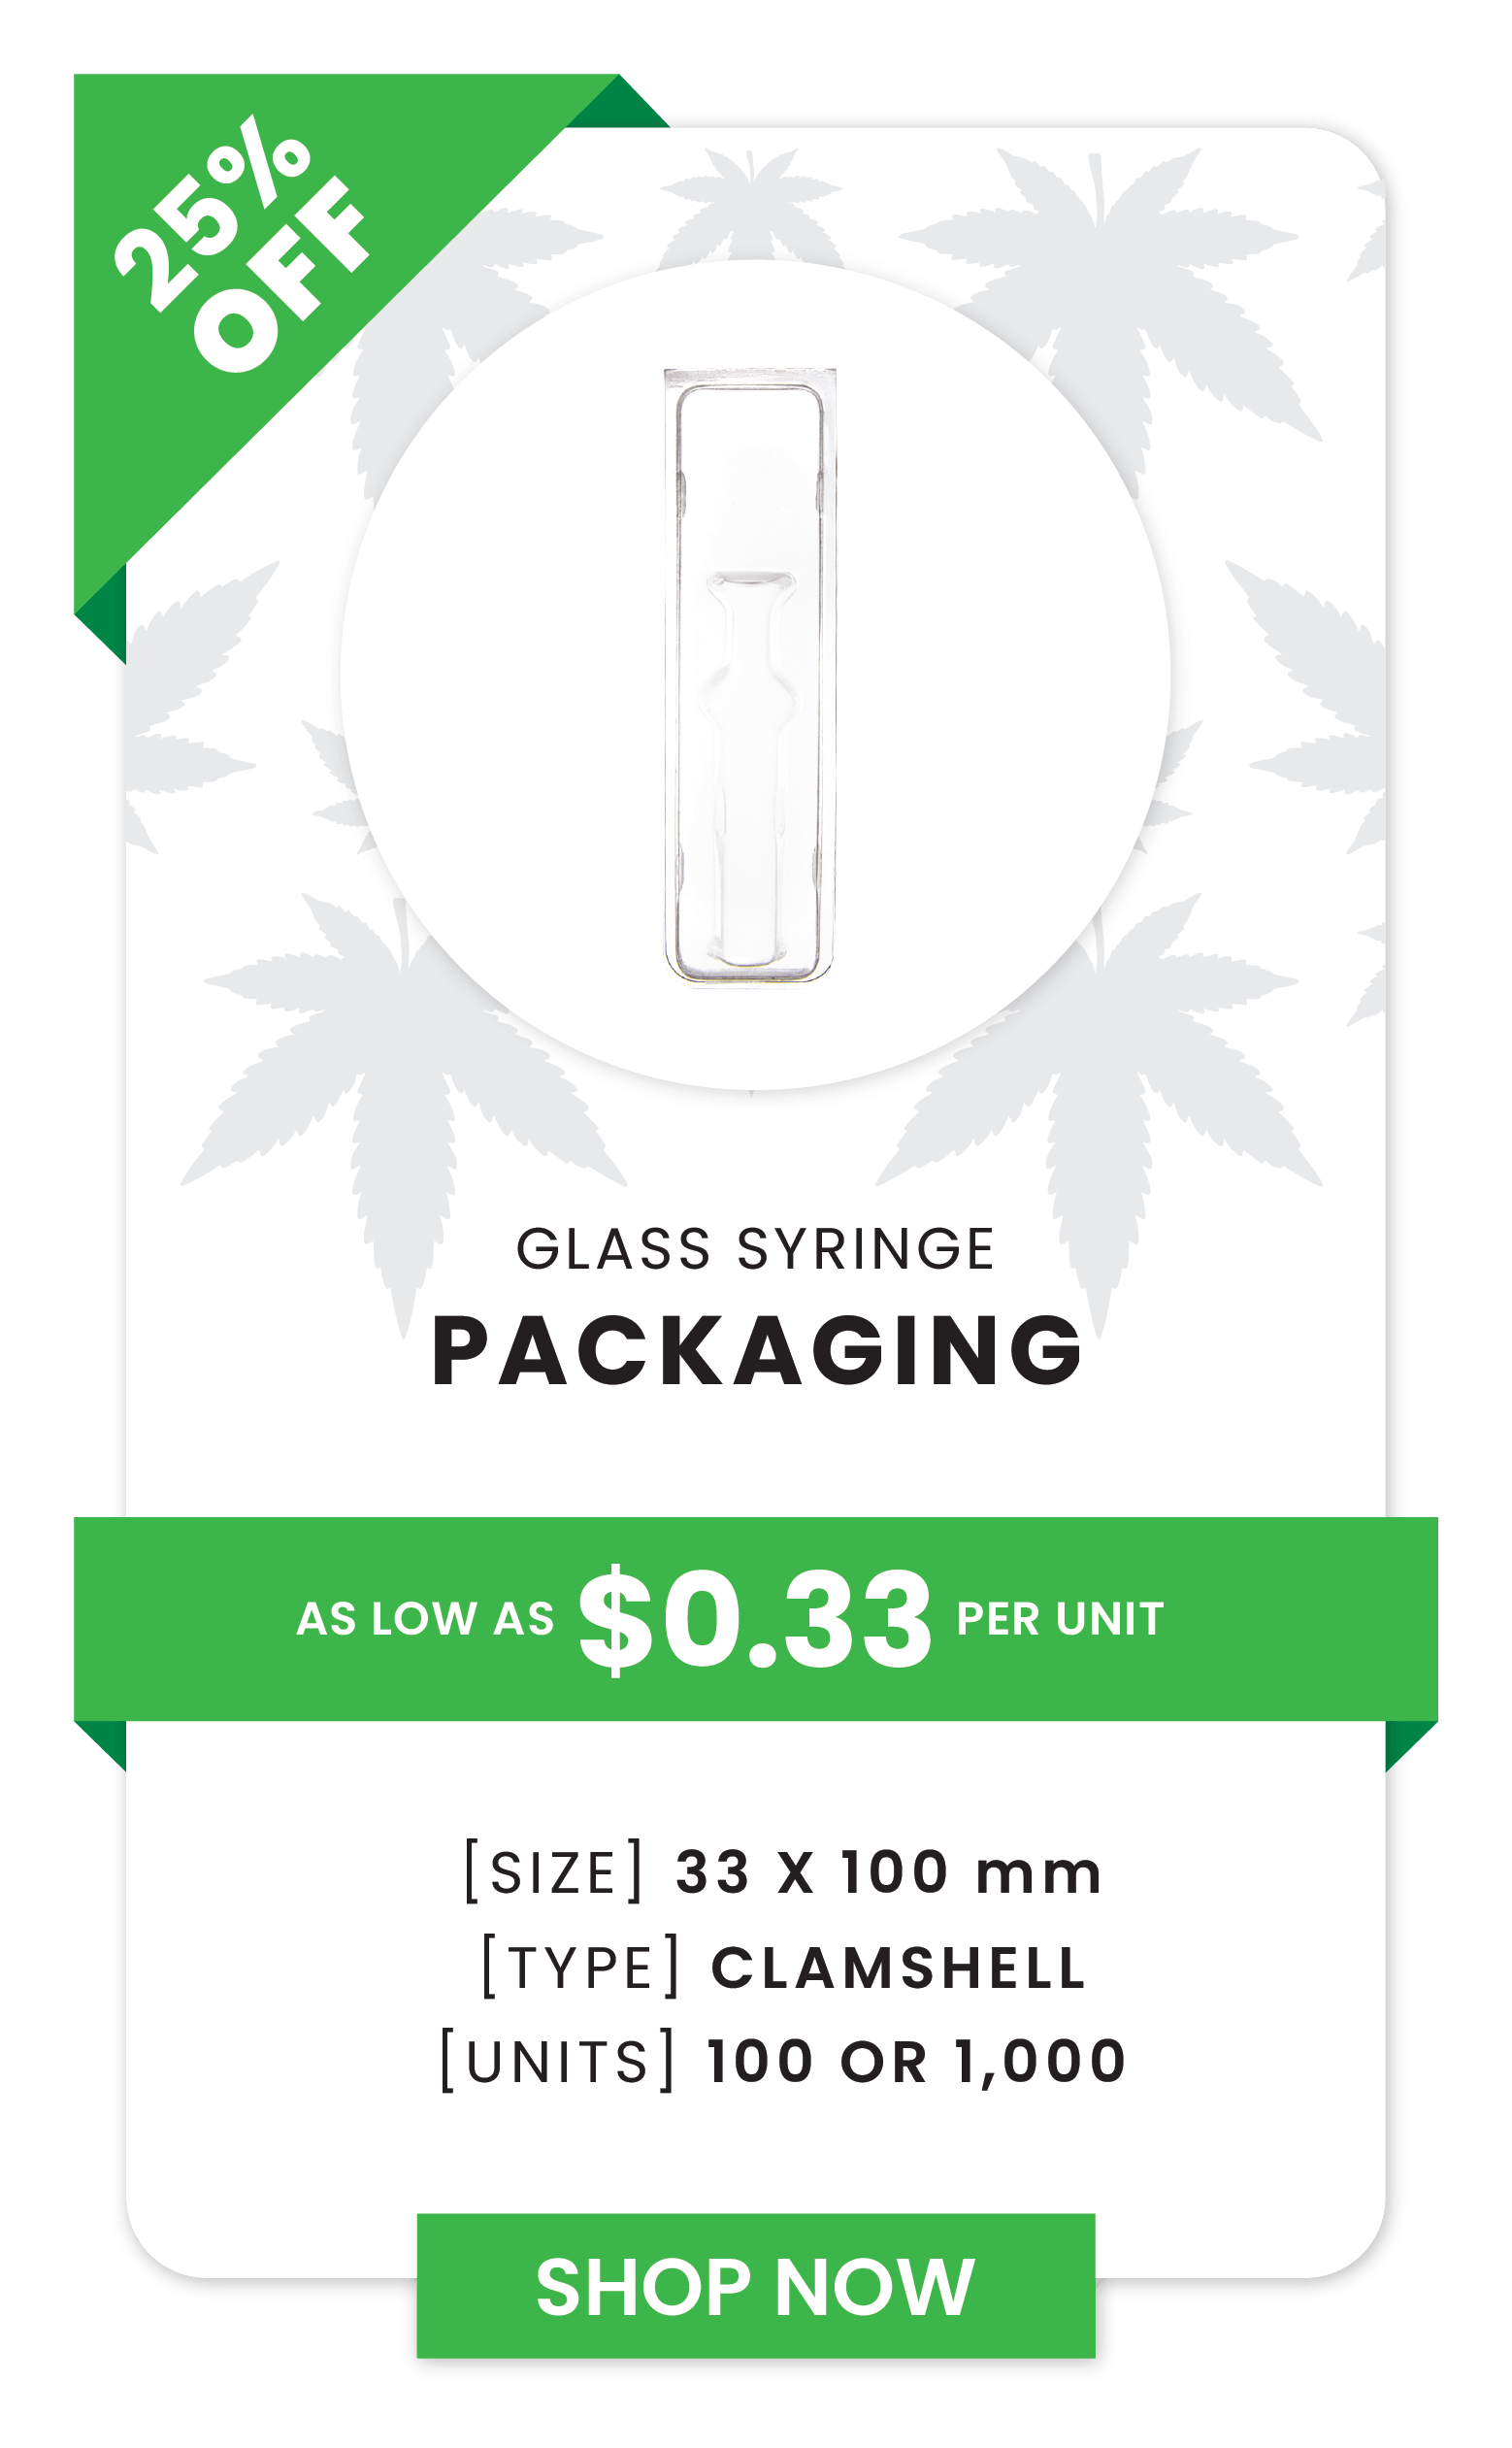 DSC-dispensary-supply-canada-sales-mylar-bag-glass-syringe-packaging-clamshell